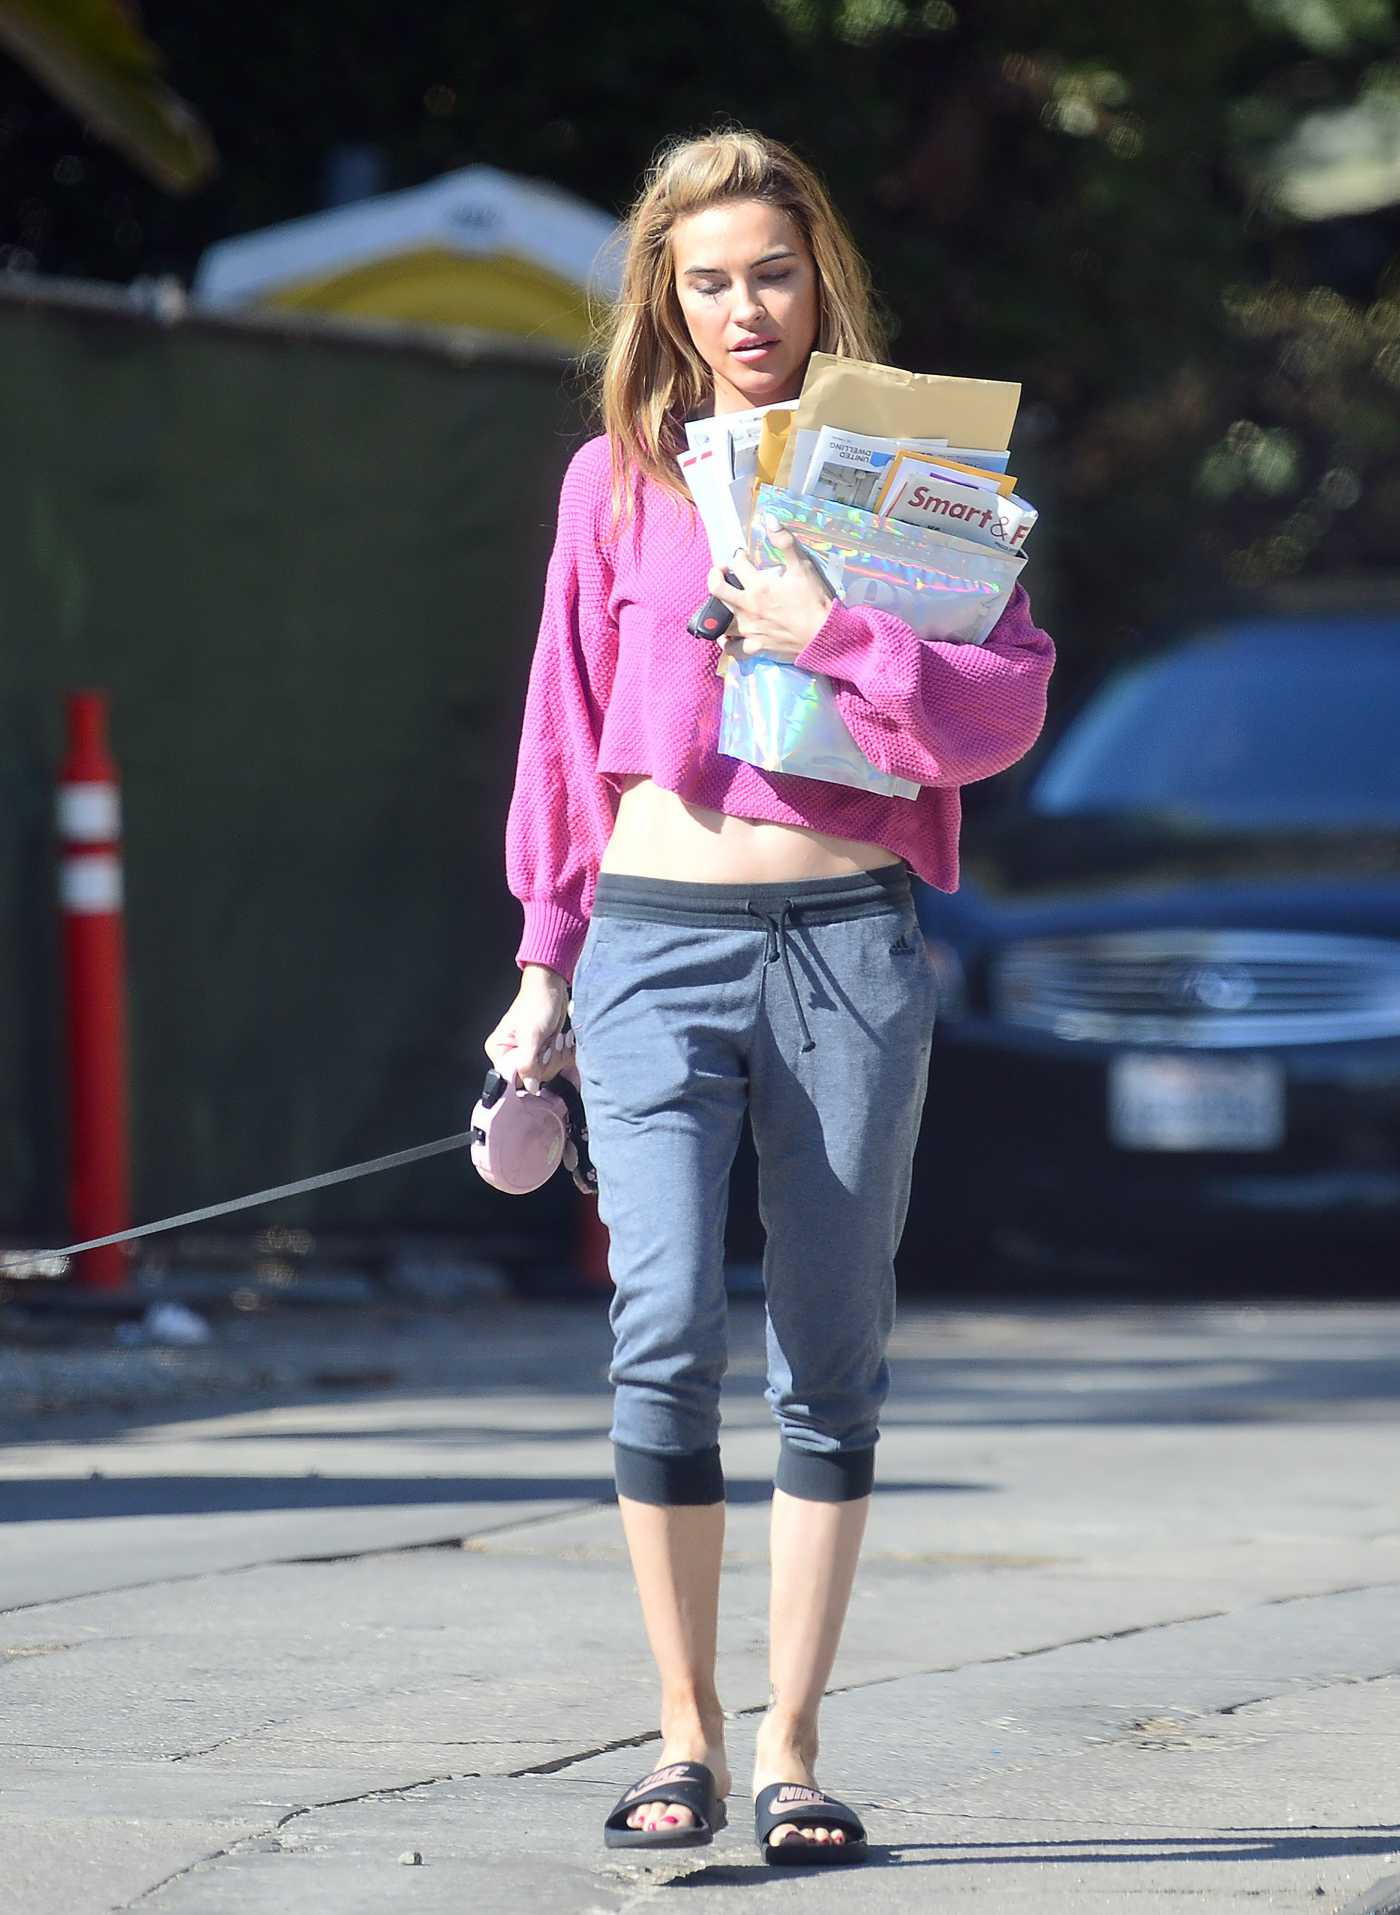 Chrishell Stause in a Midriff Bearing Crop Top Walks Her Dog in Los Angeles 11/13/2020